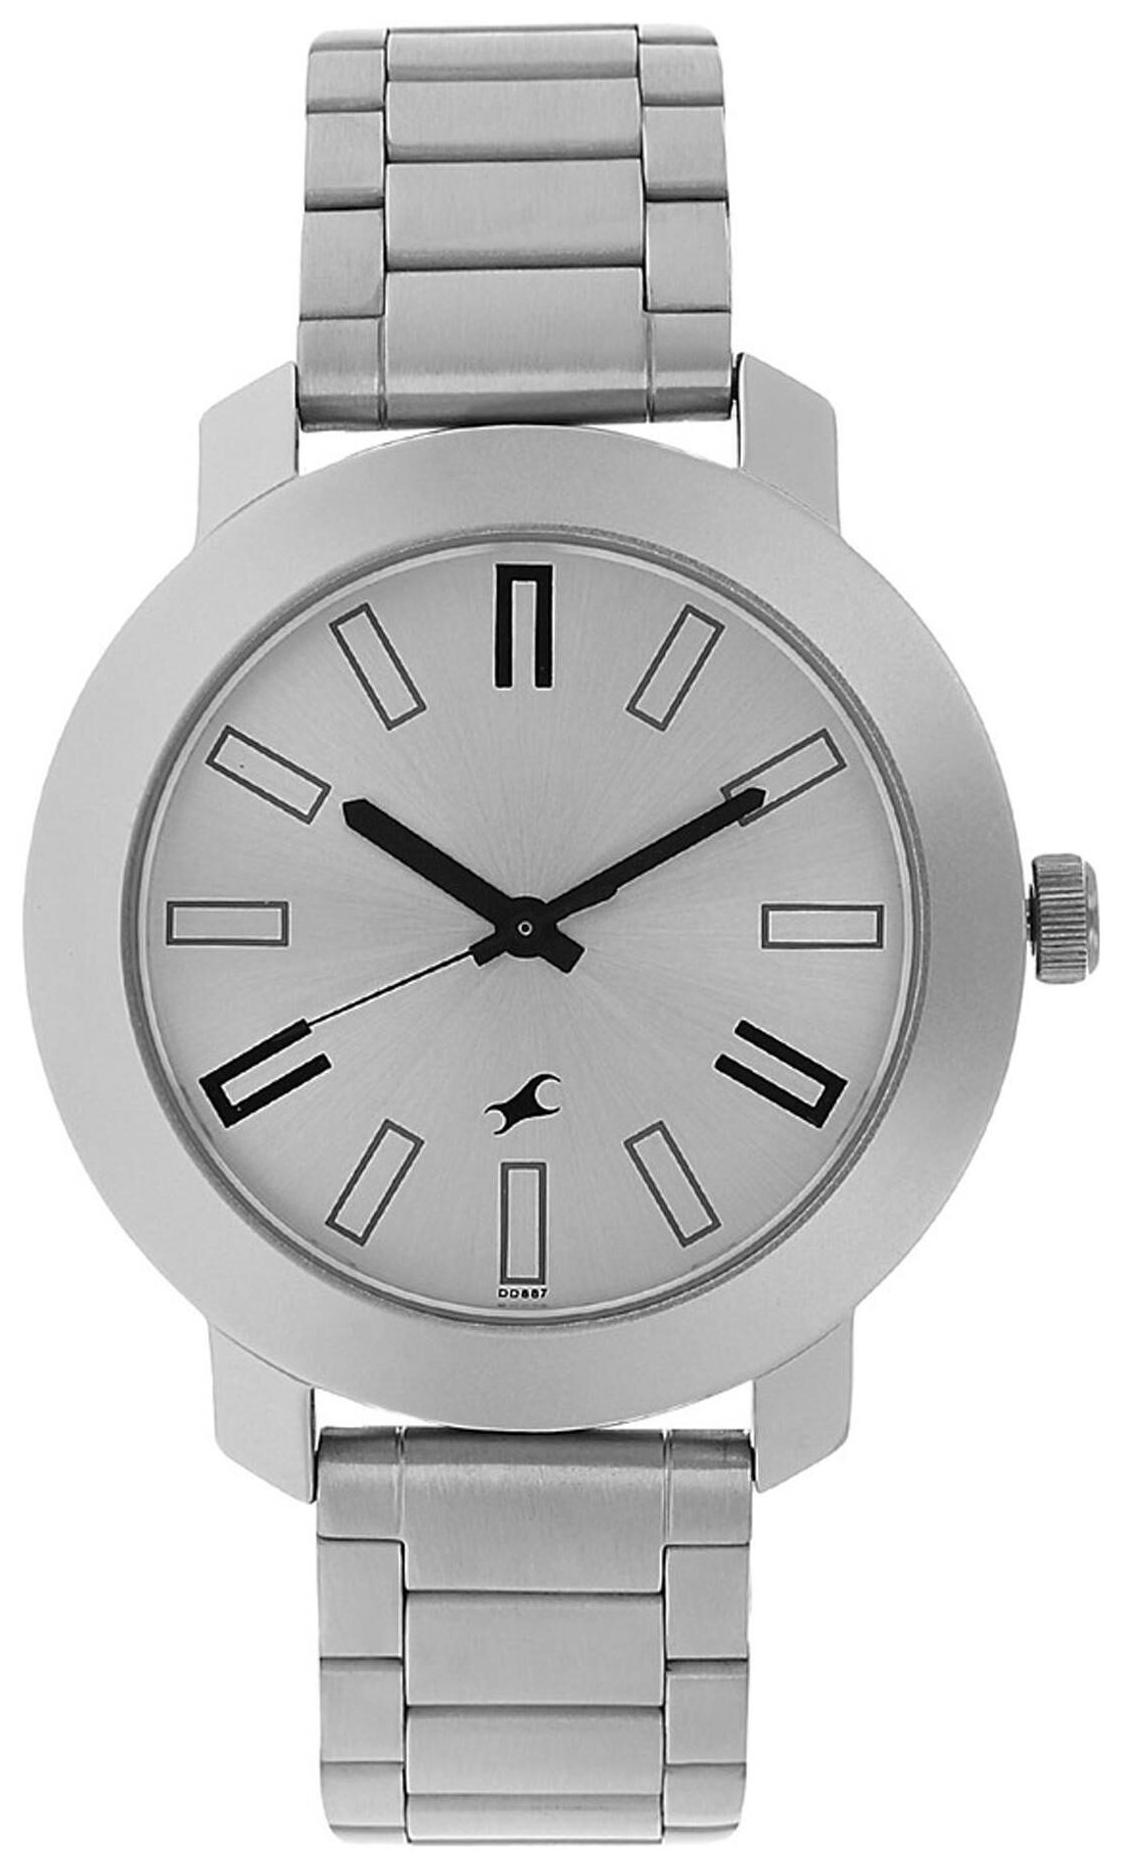 Fastrack 3120Sm01 Men Analog Watch by Watch Apeal